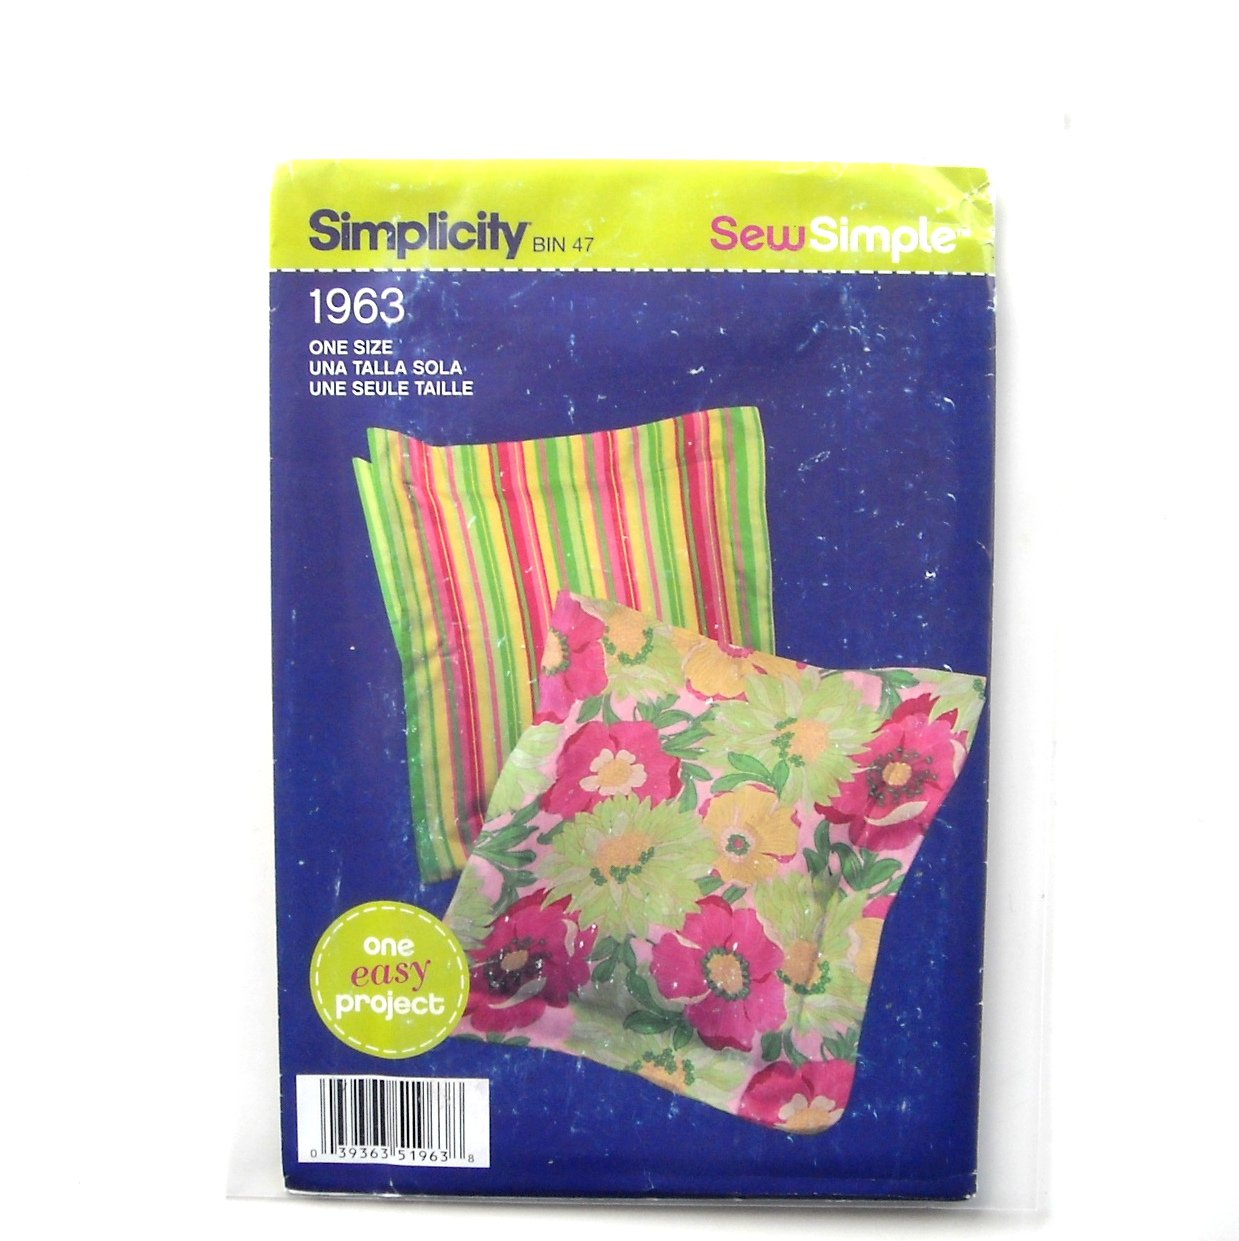 Square Pillow One Size Sew Easy Project Simplicity Pattern 1963